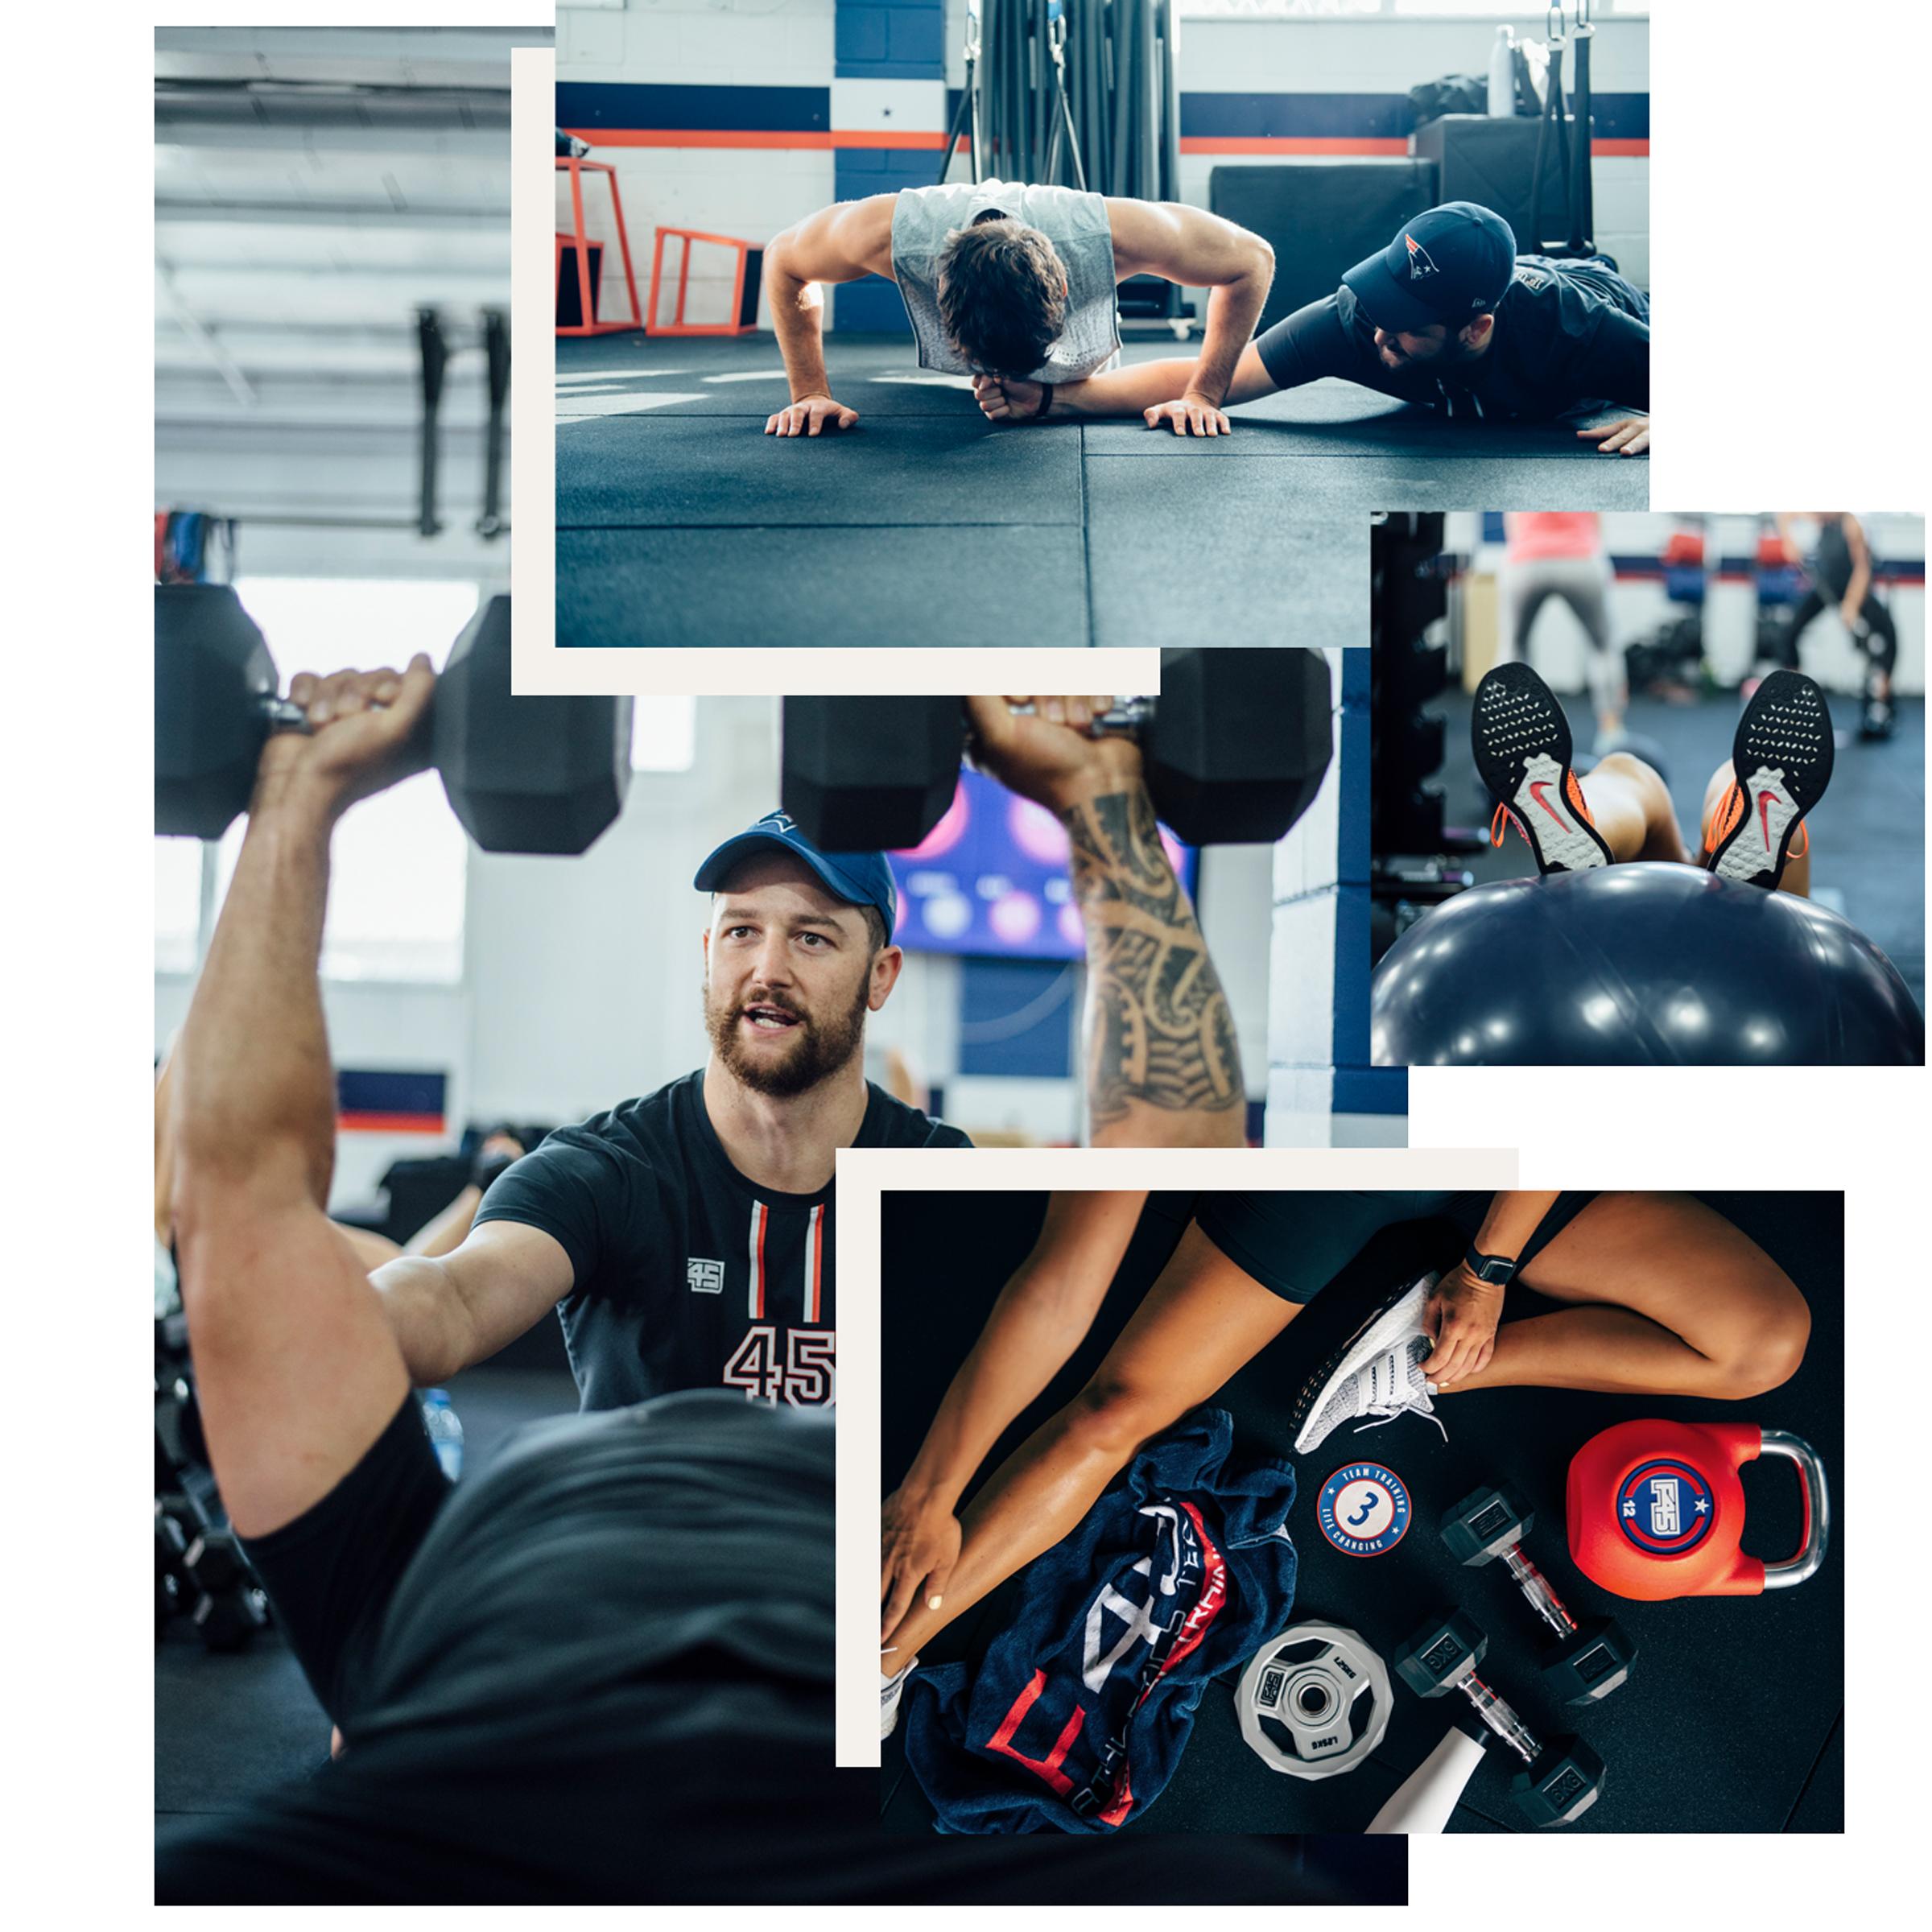 F45 TEAM TRAINING - F45 Takapuna needed unique imagery specific to their studio. F45 Training Global provides great assets for studios, however Takapuna wanted to recognise the uniqueness of their studio by including images of what makes them so - their members.Capturing in studio lifestyle imagery allowed us to showcase the amazing trainers and members working to their fitness goals and having fun while doing it.Imagery is used across the F45 Training Takapuna Instagram and Facebook. Having imagery of members is a useful way to get people excited about the brand by sharing their own experience, and in turn reaching a wider audience.